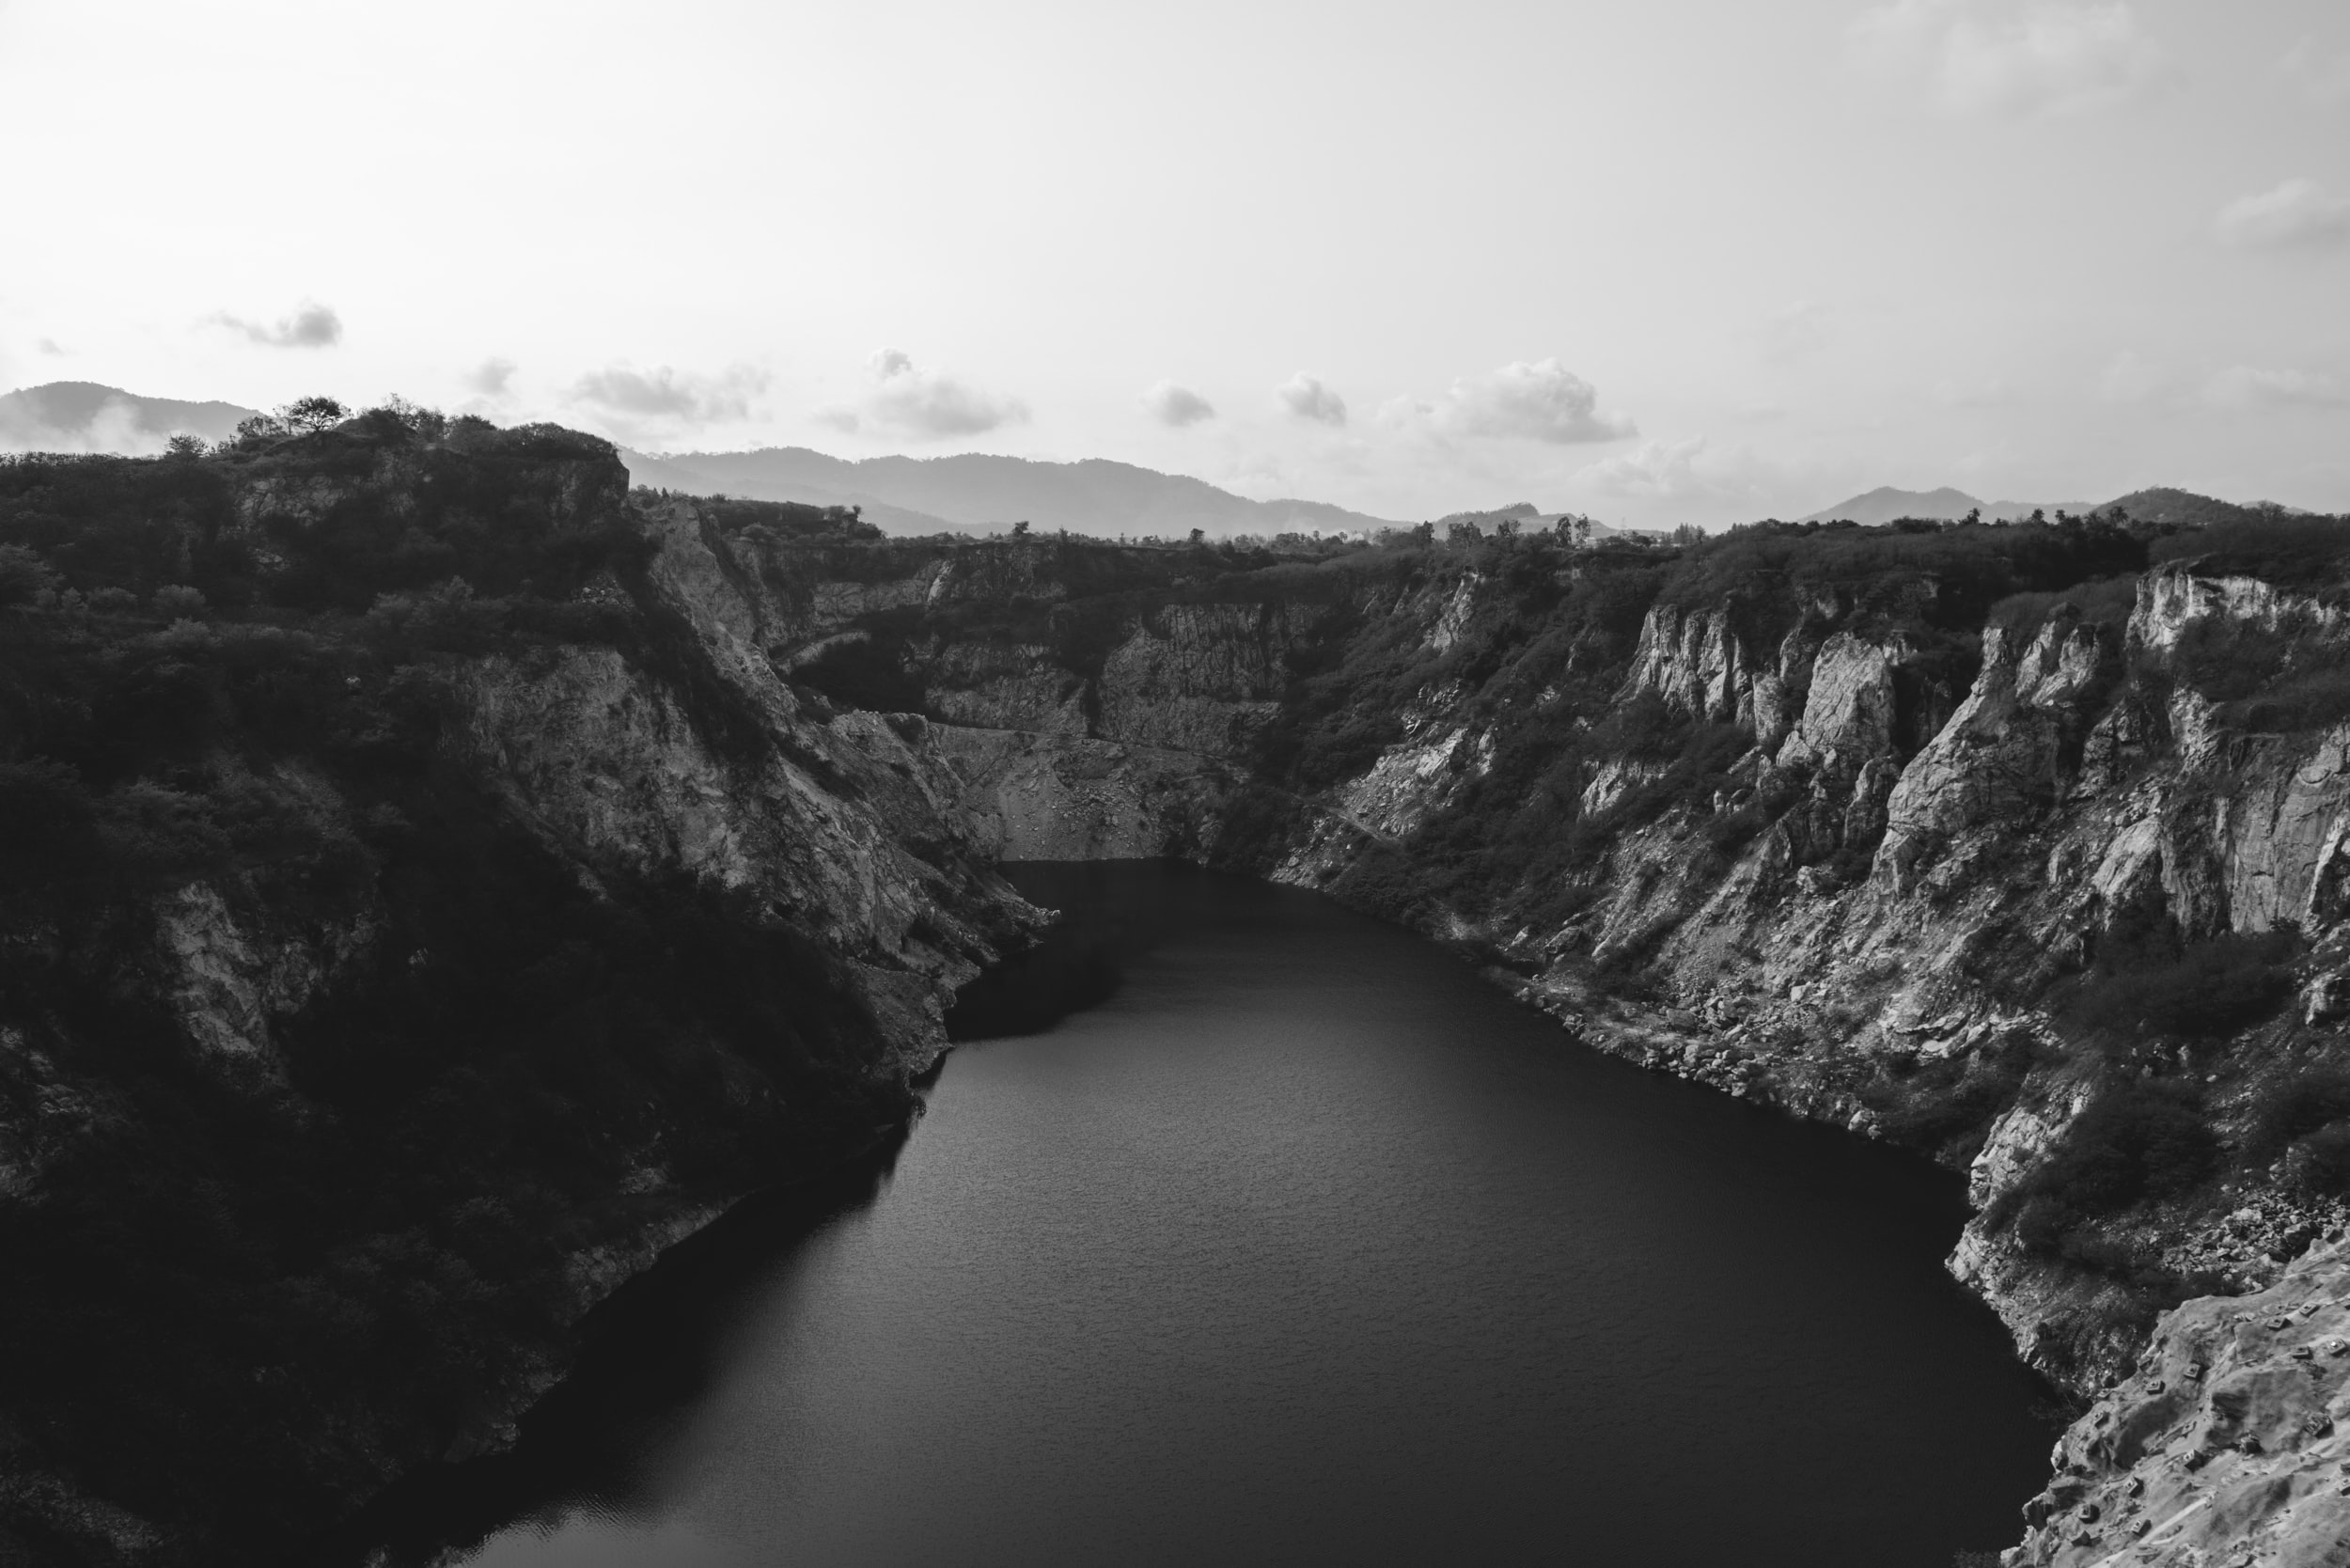 aerial grayscale photography of mountains near body of water